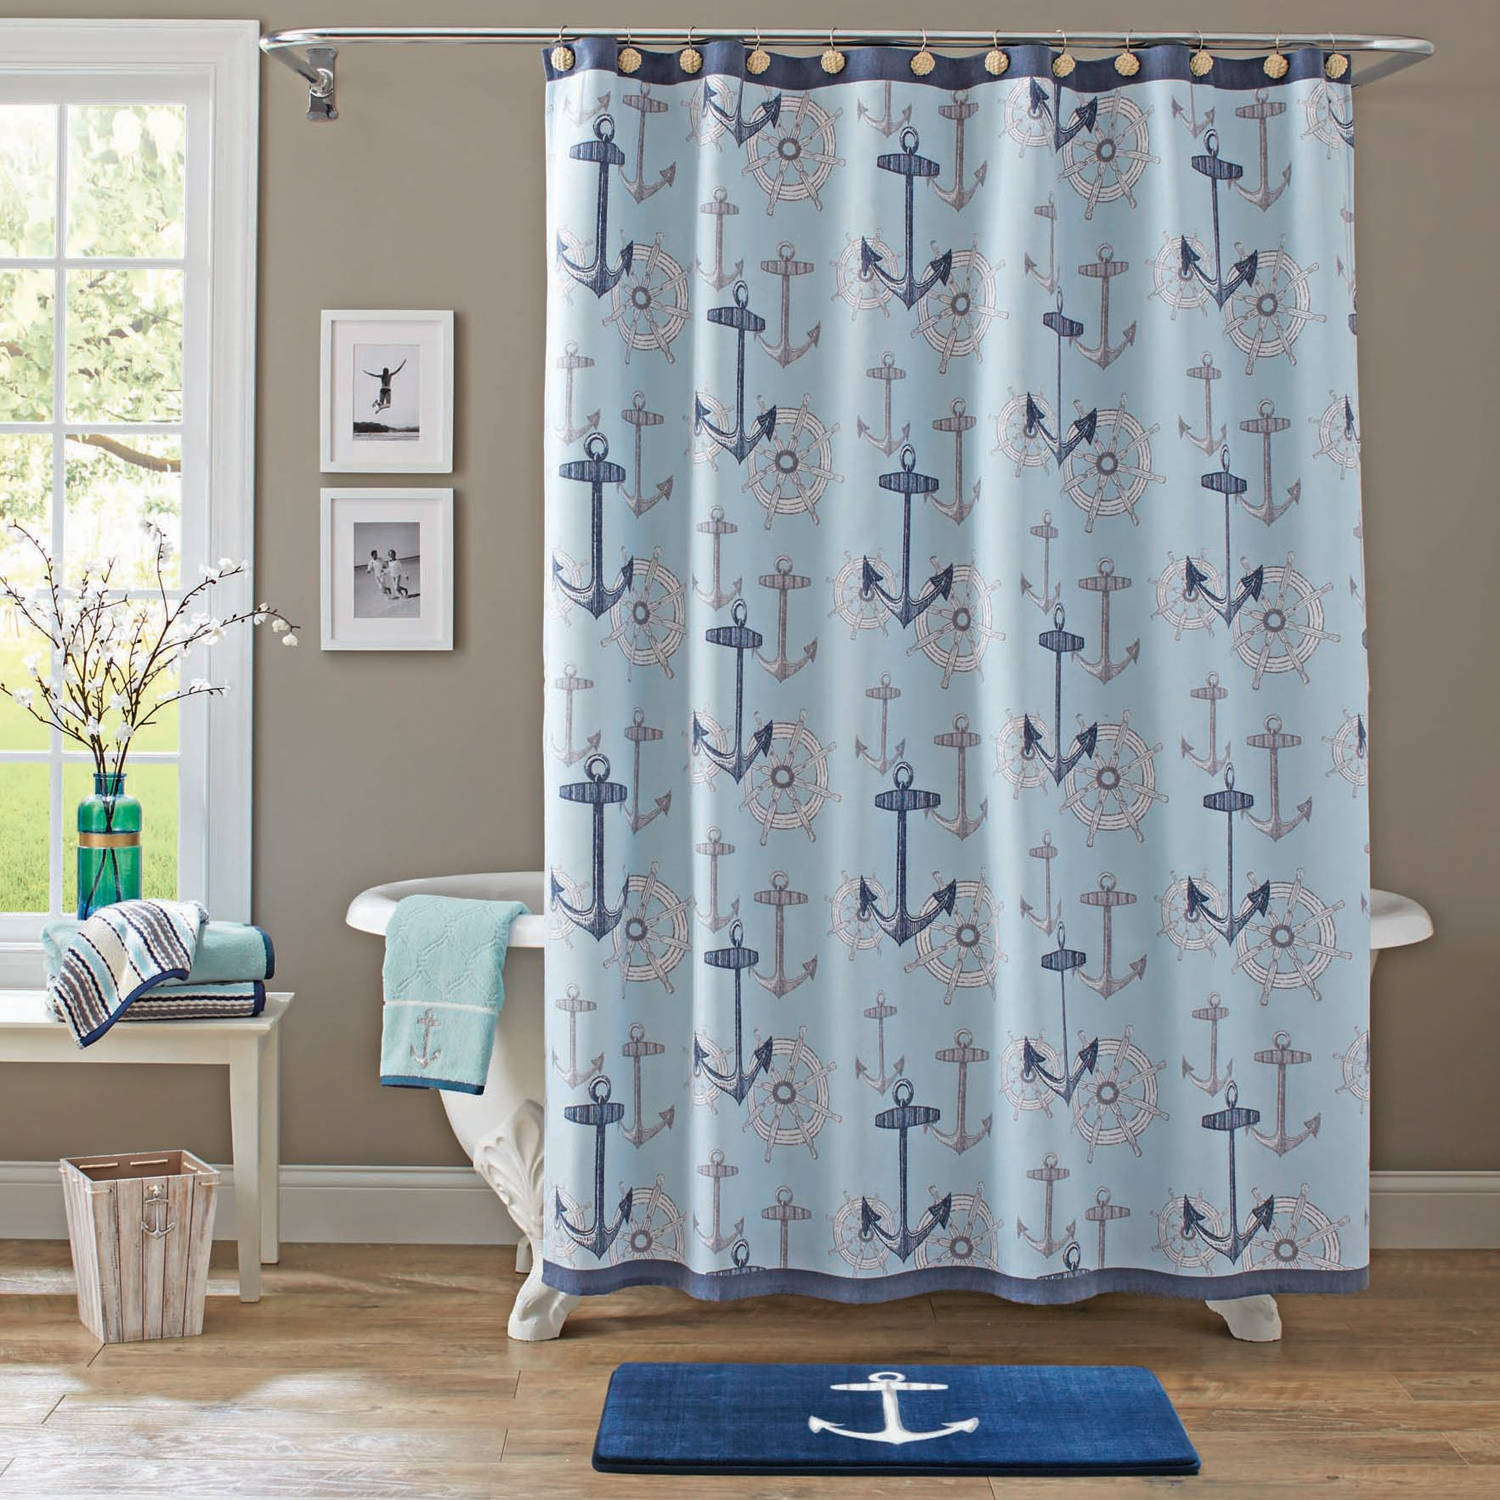 Better Homes and Gardens Shower Curtains Walmartcom